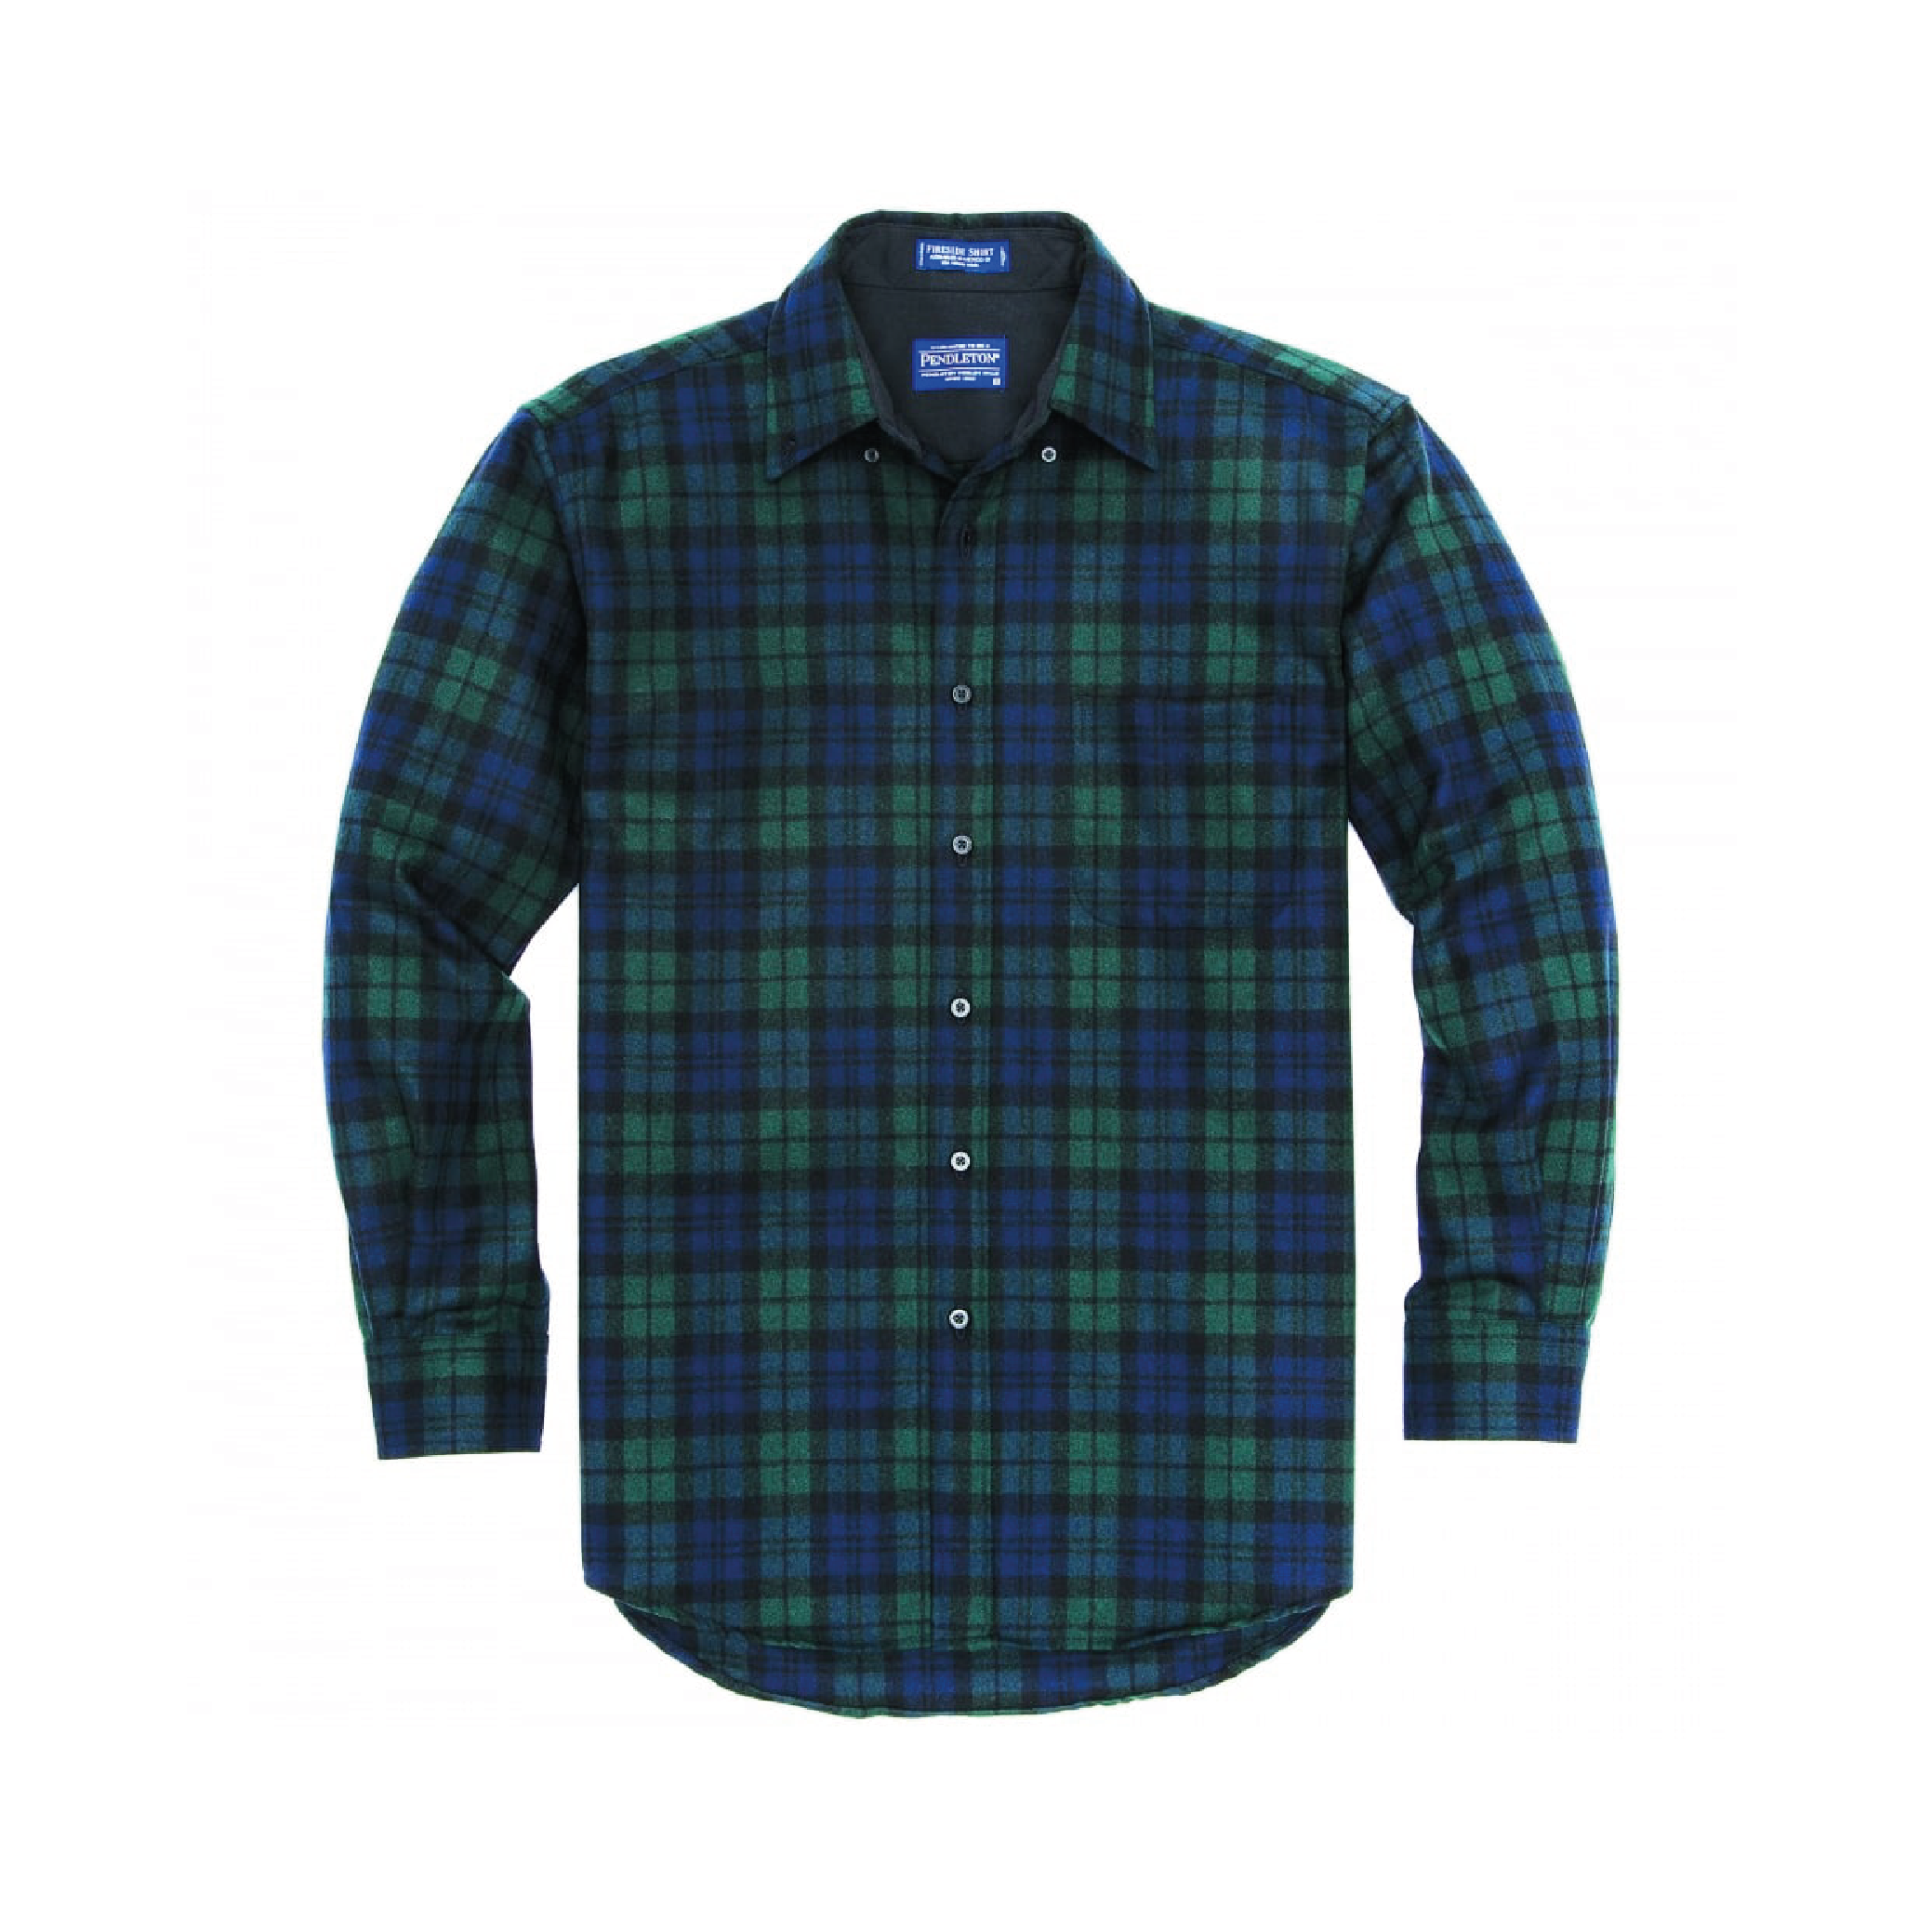 FIRESIDE SHIRT    By  Pendleton     The perfect shirt to sit by a campfire, take a hike or roll to work in.    SHOP NOW          £95